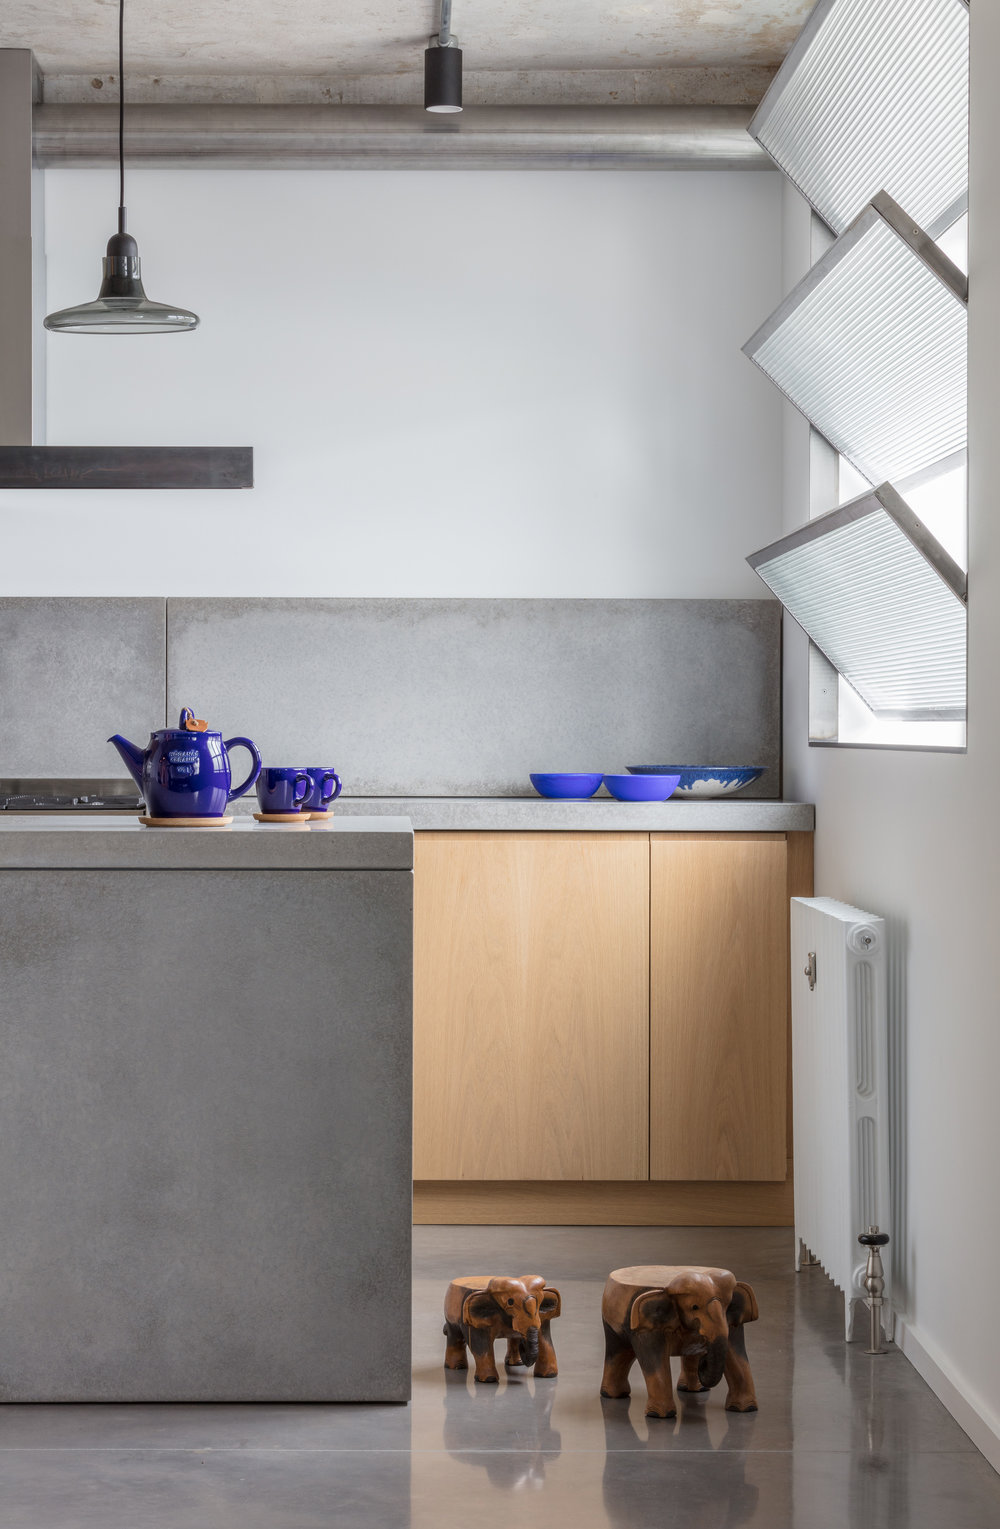 Union-Wharf-Islington-London-Concrete-Shutters-Kitchen-Island-Interior-Residential-Architect.jpg